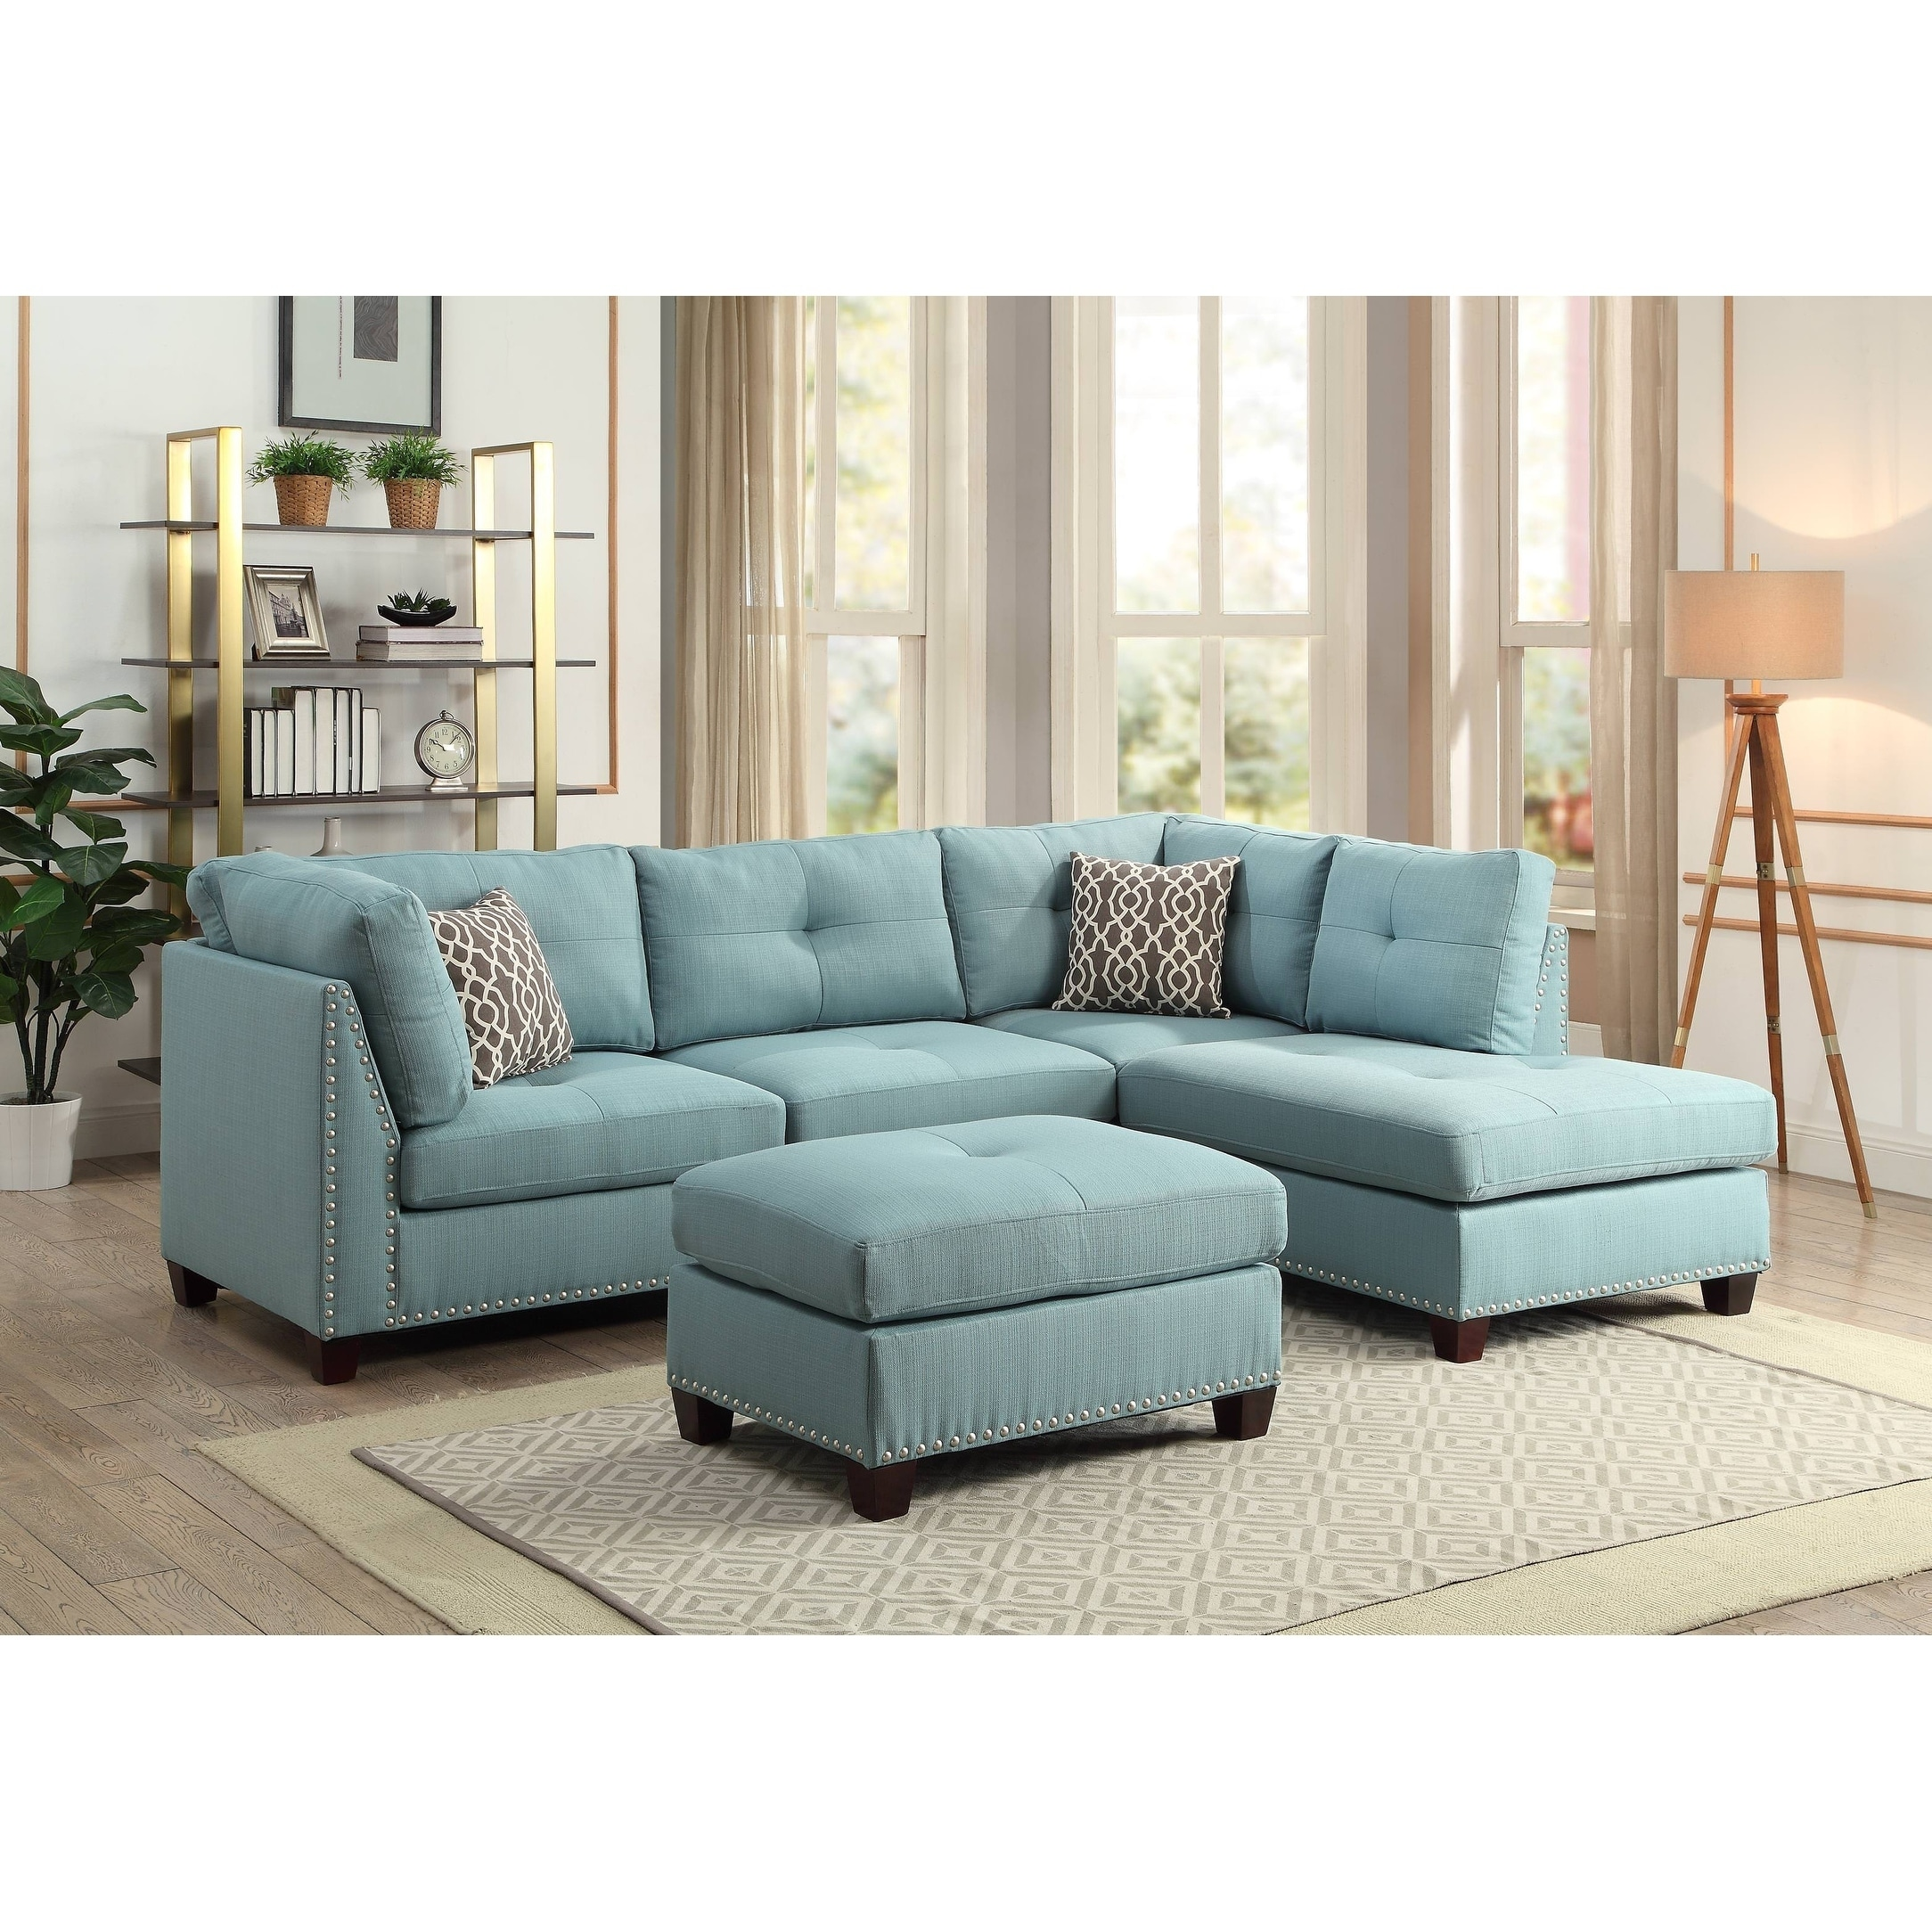 Exceptionnel Shop ACME Laurissa L Shape Sectional Sofa With Ottoman In Light Teal Linen    Free Shipping Today   Overstock.com   19807656